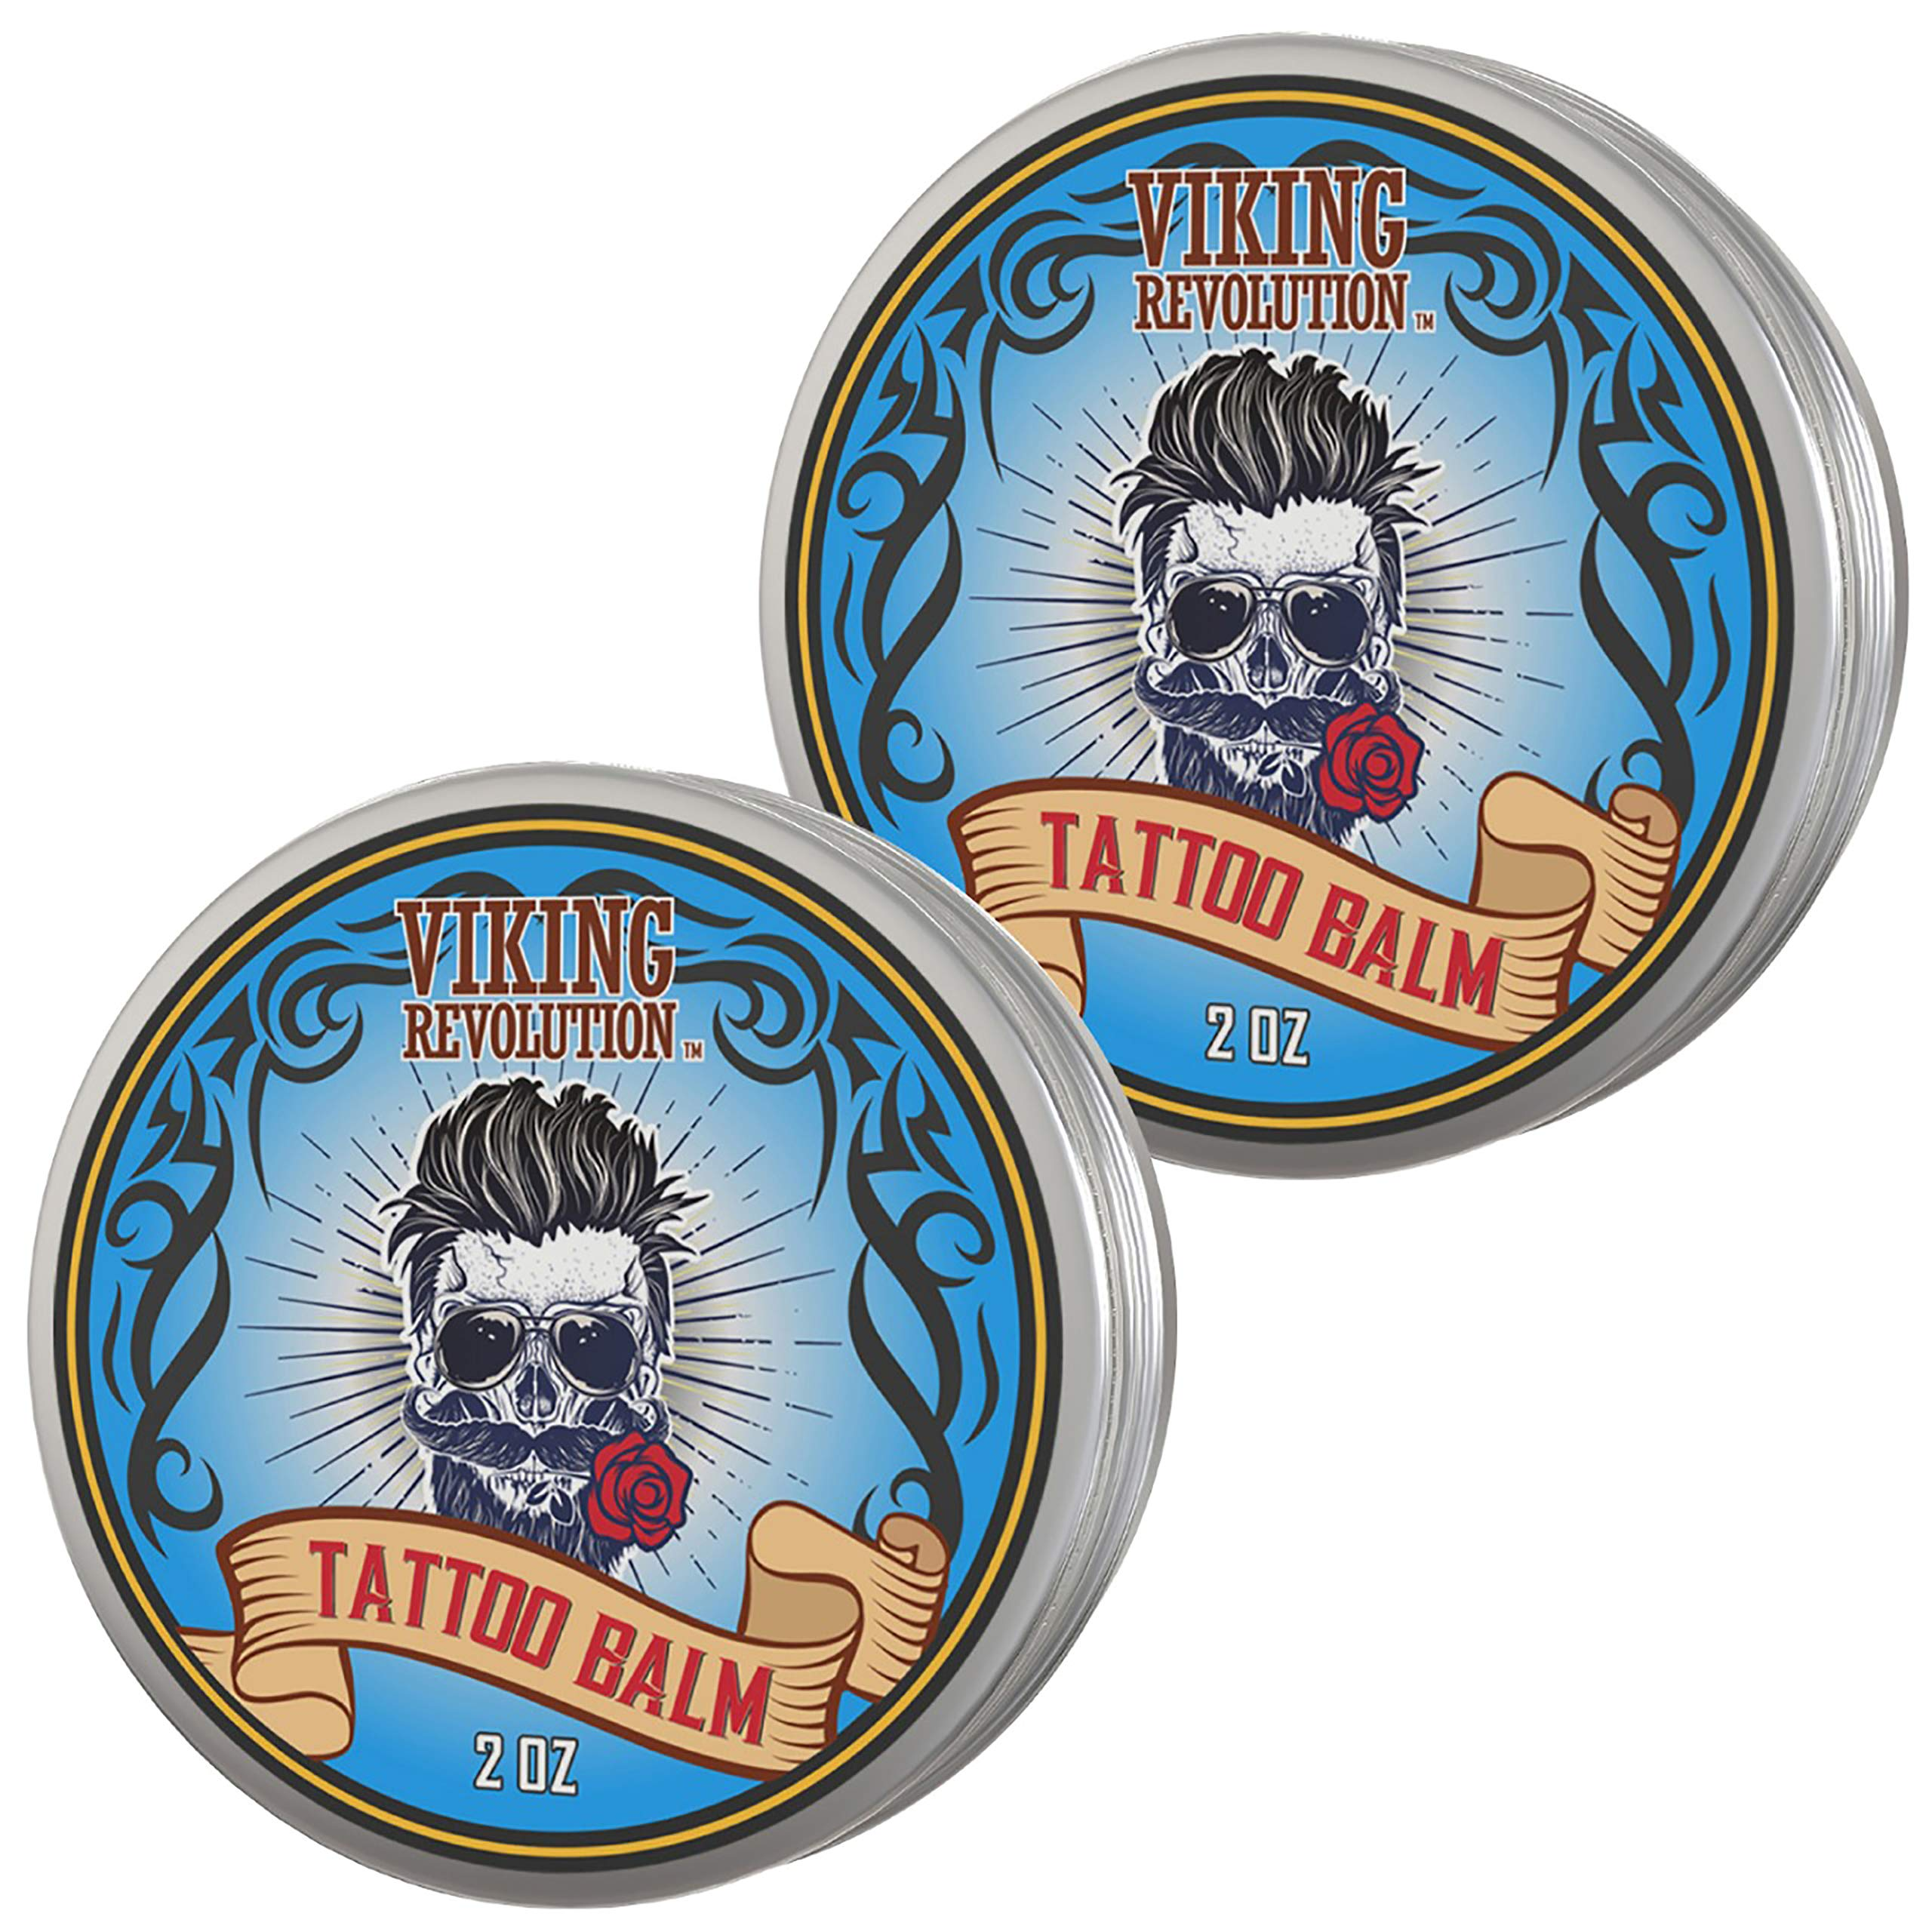 Viking Revolution Tattoo Care Balm for Before, During & Post Tattoo - Safe, Natural Tattoo Aftercare Cream - Moisturizing Lotion to Promote Skin Healing - Tattoo Brightening Treatment (2 Pack) by Viking Revolution